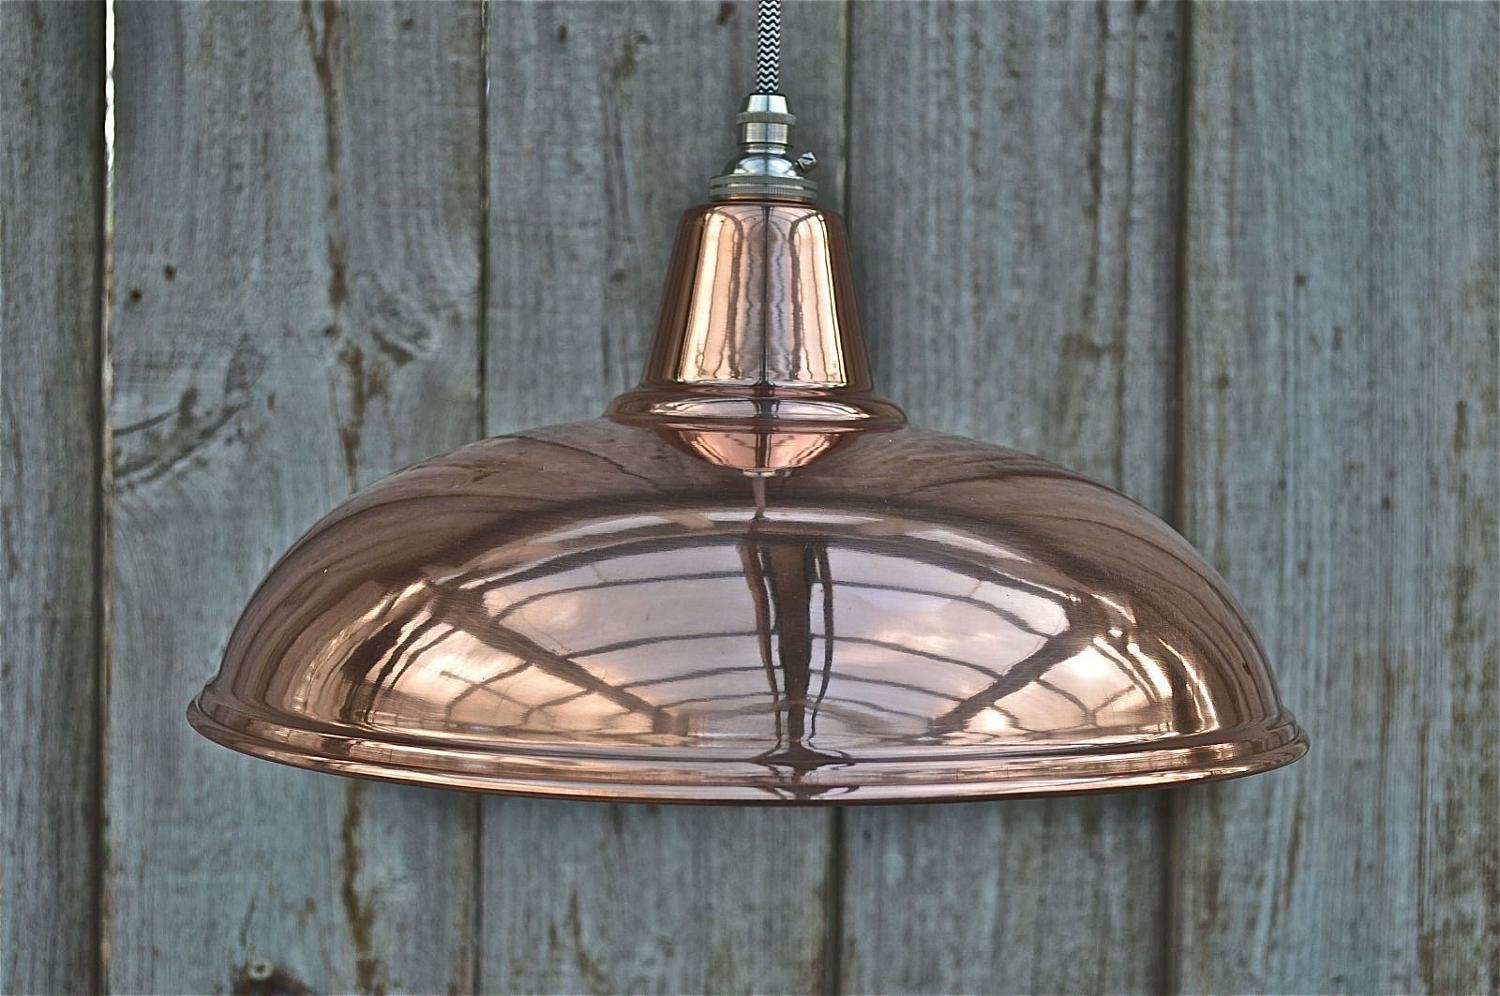 Beautiful vintage styled copper ceiling light hanging lamp shade